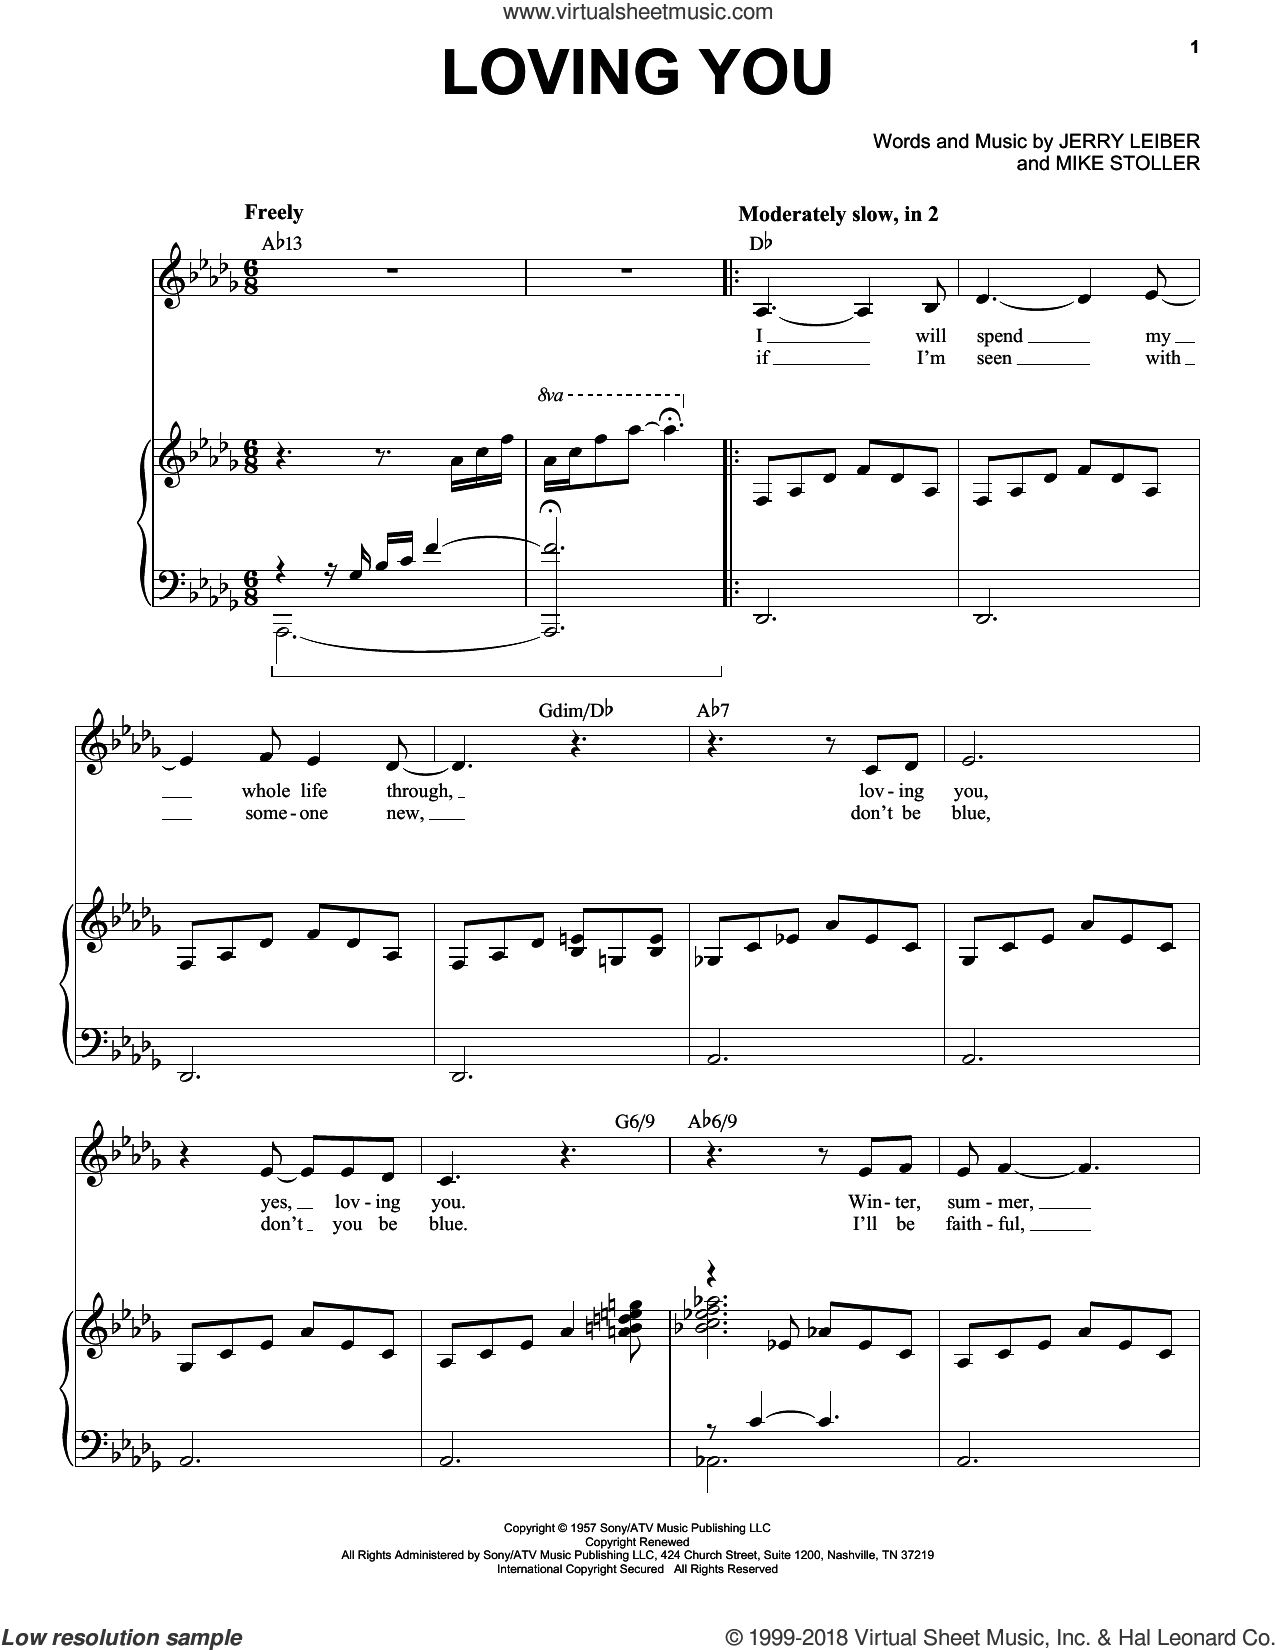 Loving You sheet music for voice and piano by Elvis Presley, Jerry Leiber and Mike Stoller, intermediate skill level